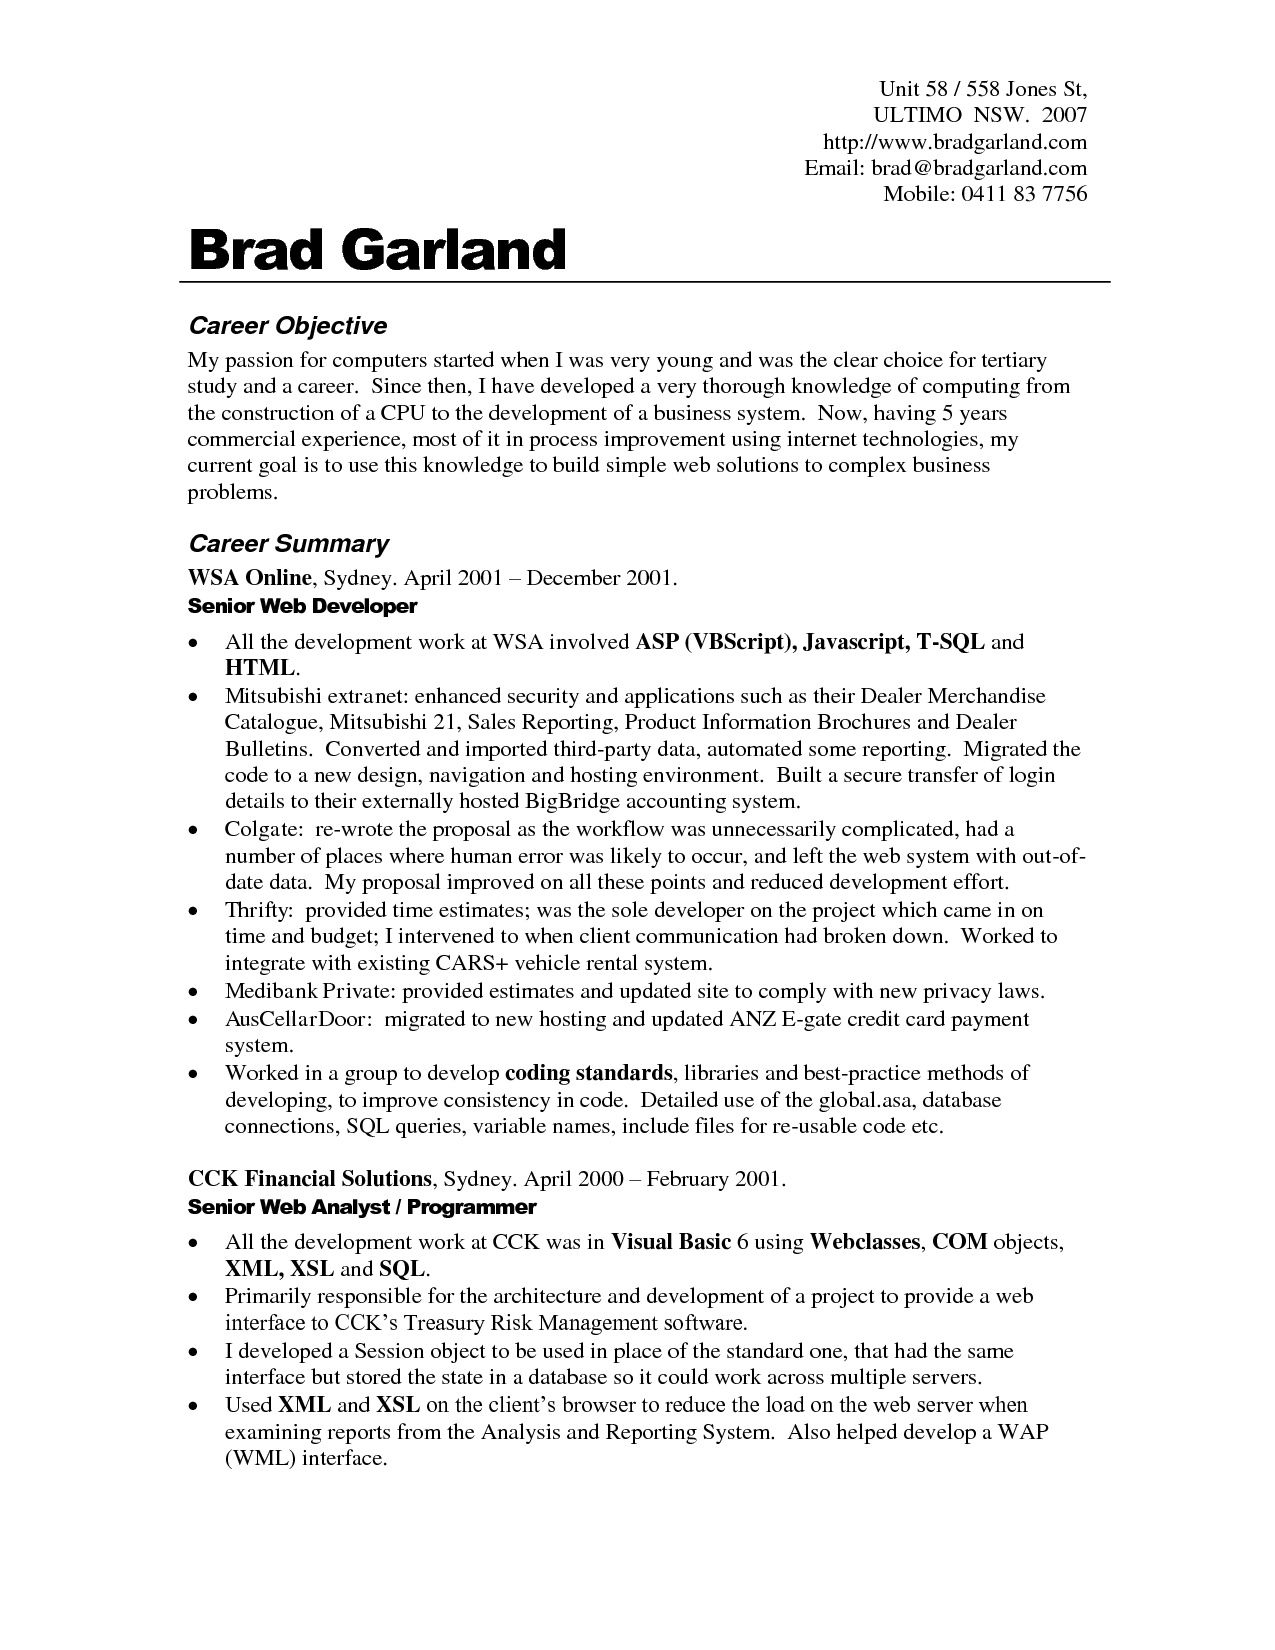 resume samples career objective - Professional Objective In Resume